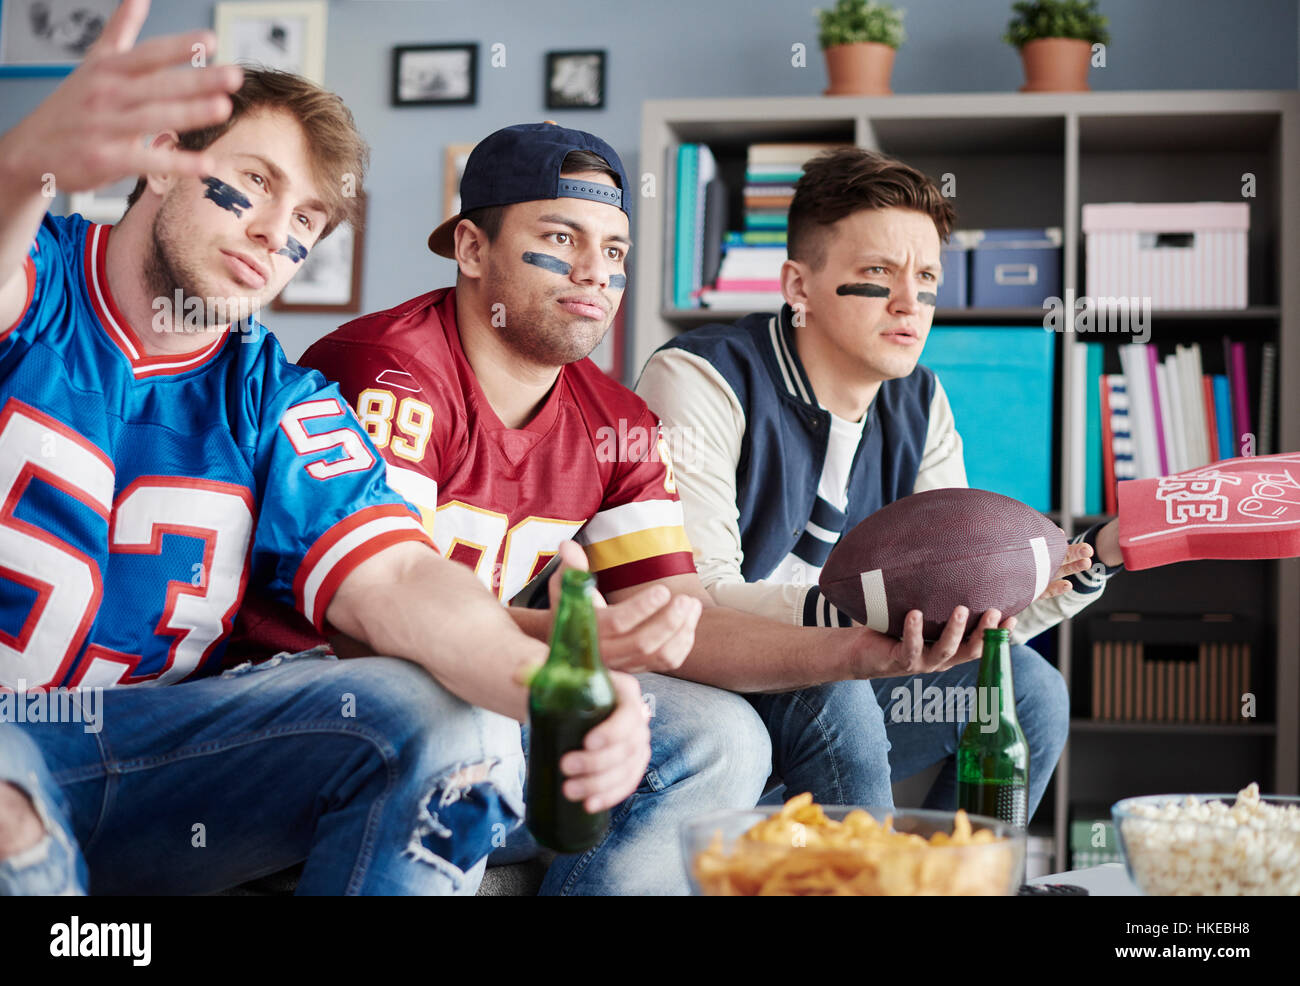 Guys was waiting for one more score but in vain - Stock Image